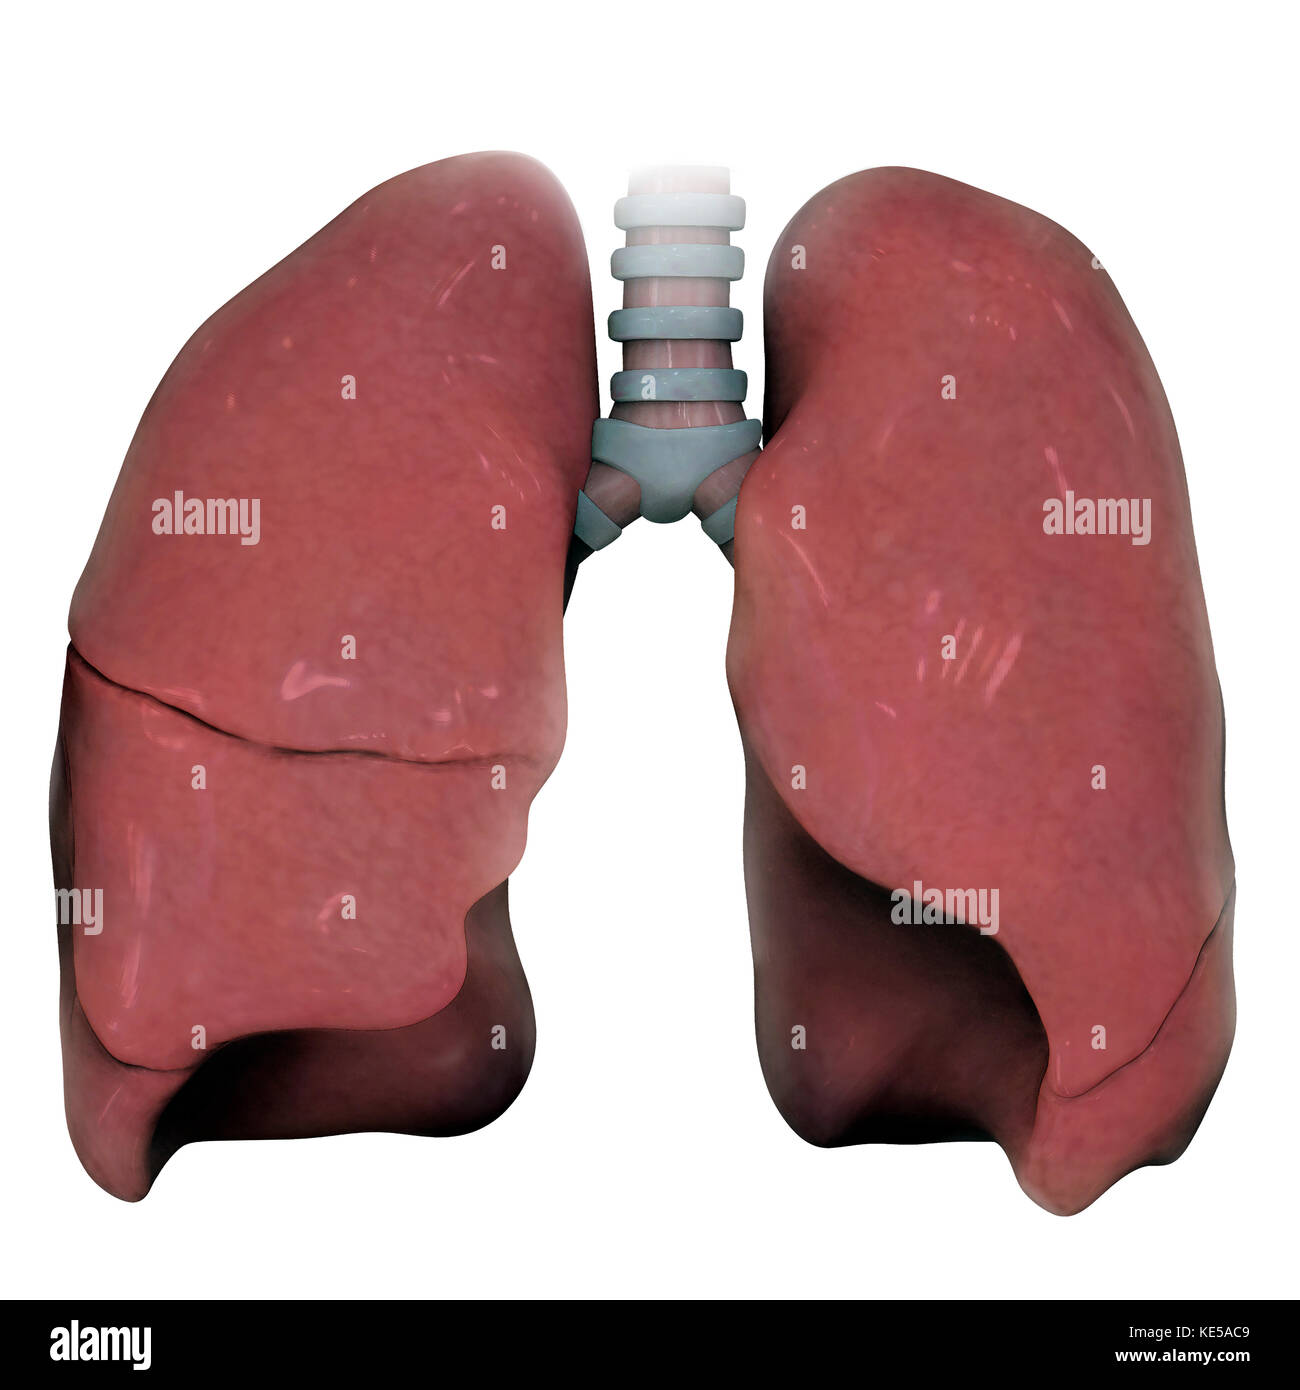 3D model of right and left human lung. - Stock Image